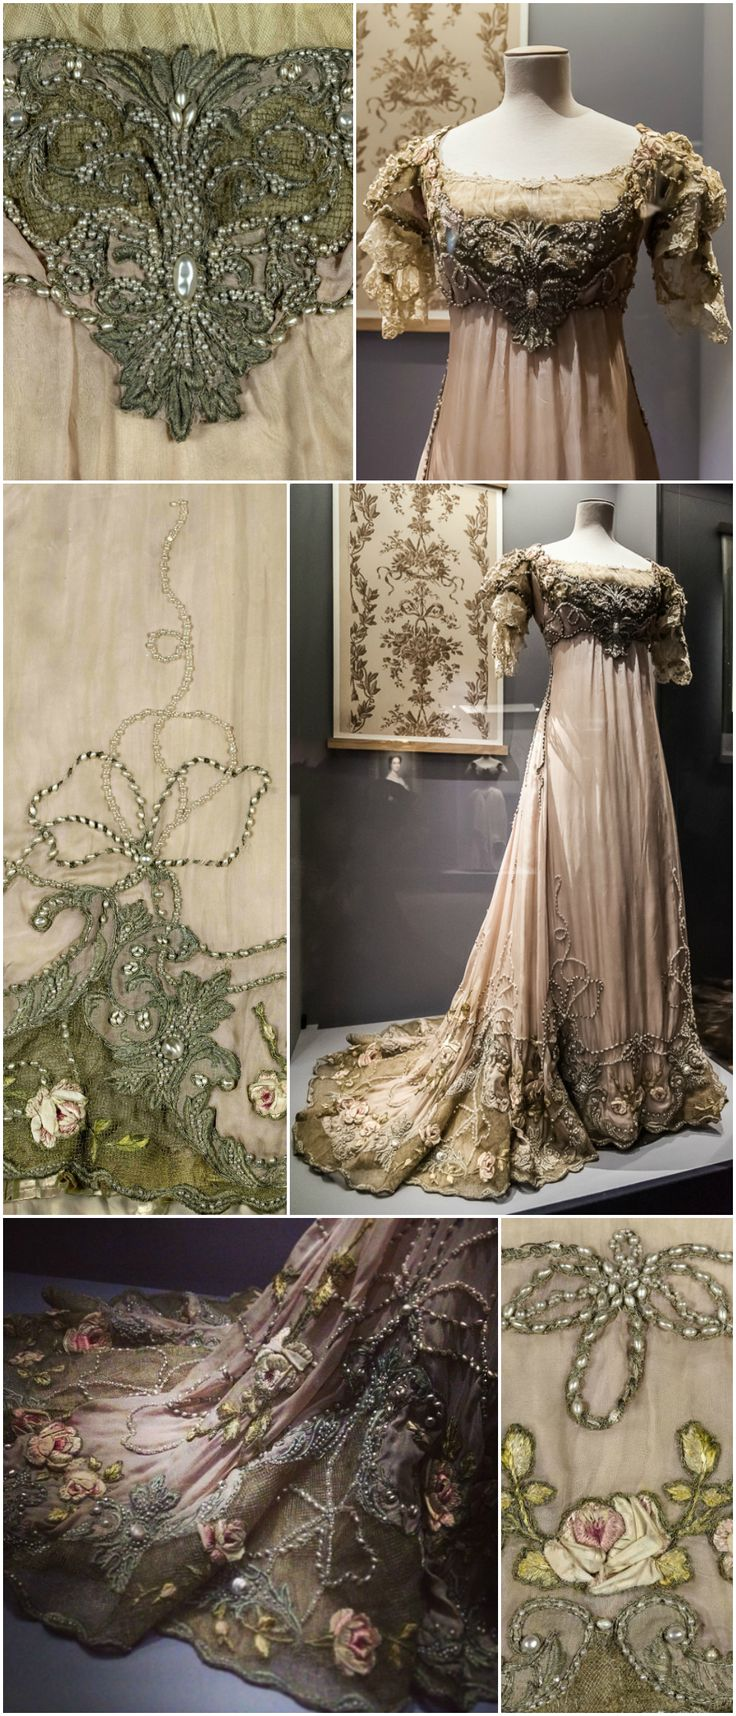 Evening dress by Redfern, 1903-13, at the Palais Galliera, musée de la Mode de la Ville de Paris. Worn by Anna Gould. Pink pongee silk, embroidery, lace, pearls, gold tulle, lining, petticoat. Close-up photos of the embroidery: © Eric Emo / Galliera / Roger-Viollet. Photos of the dress on a mannequin: Jacqueline Poggi / jacqueline.poggi on Flickr (full-length shots of the dress and its bodice) and Katia / damealalicorne on Instagram (detail of train). CLICK THROUGH TO ENLARGE THE IMAGES.